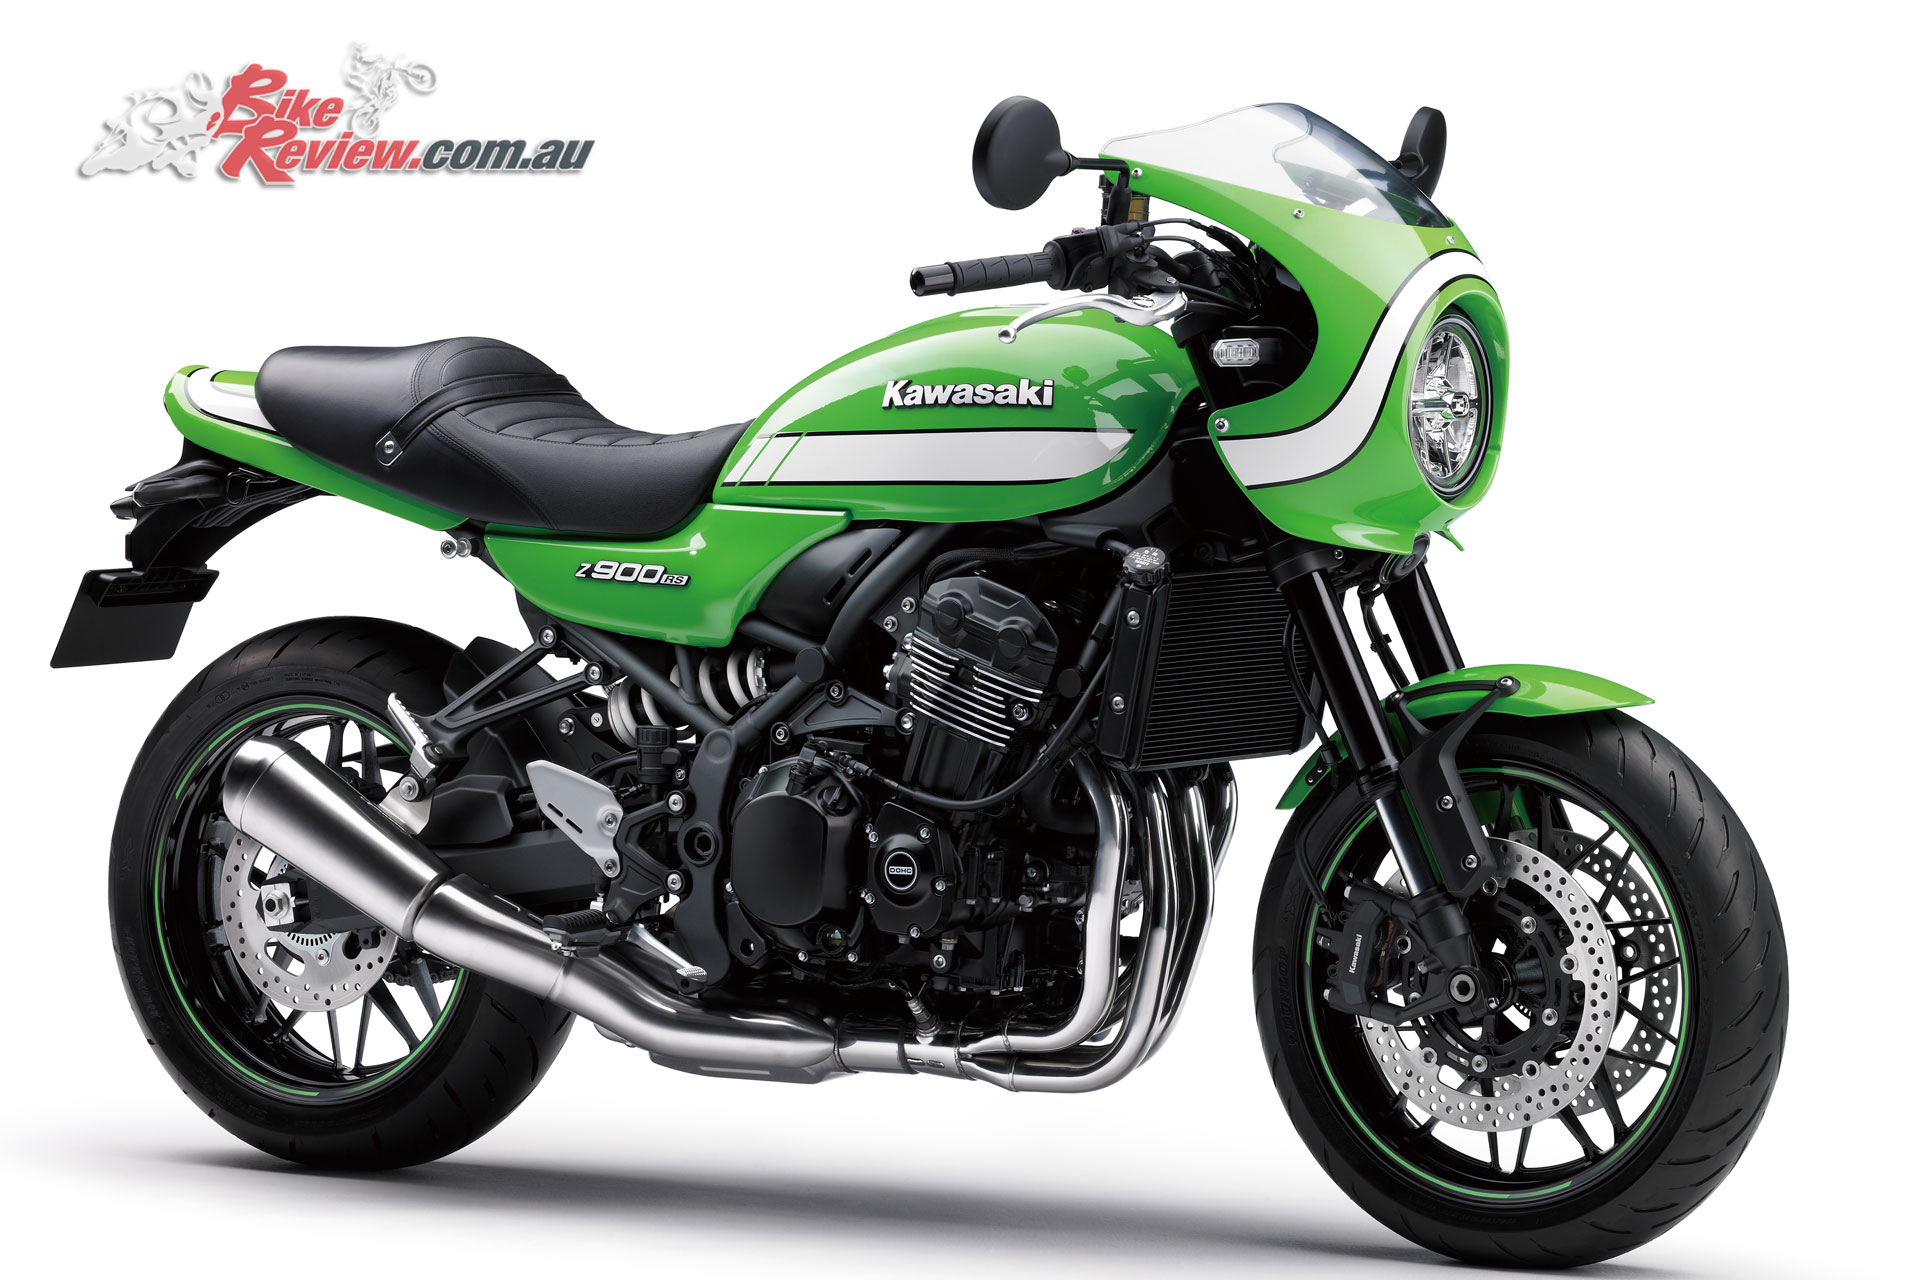 The Z900RS Cafe features the same core ergonomics as the standard RS, but includes dropped 'racer style 'bars